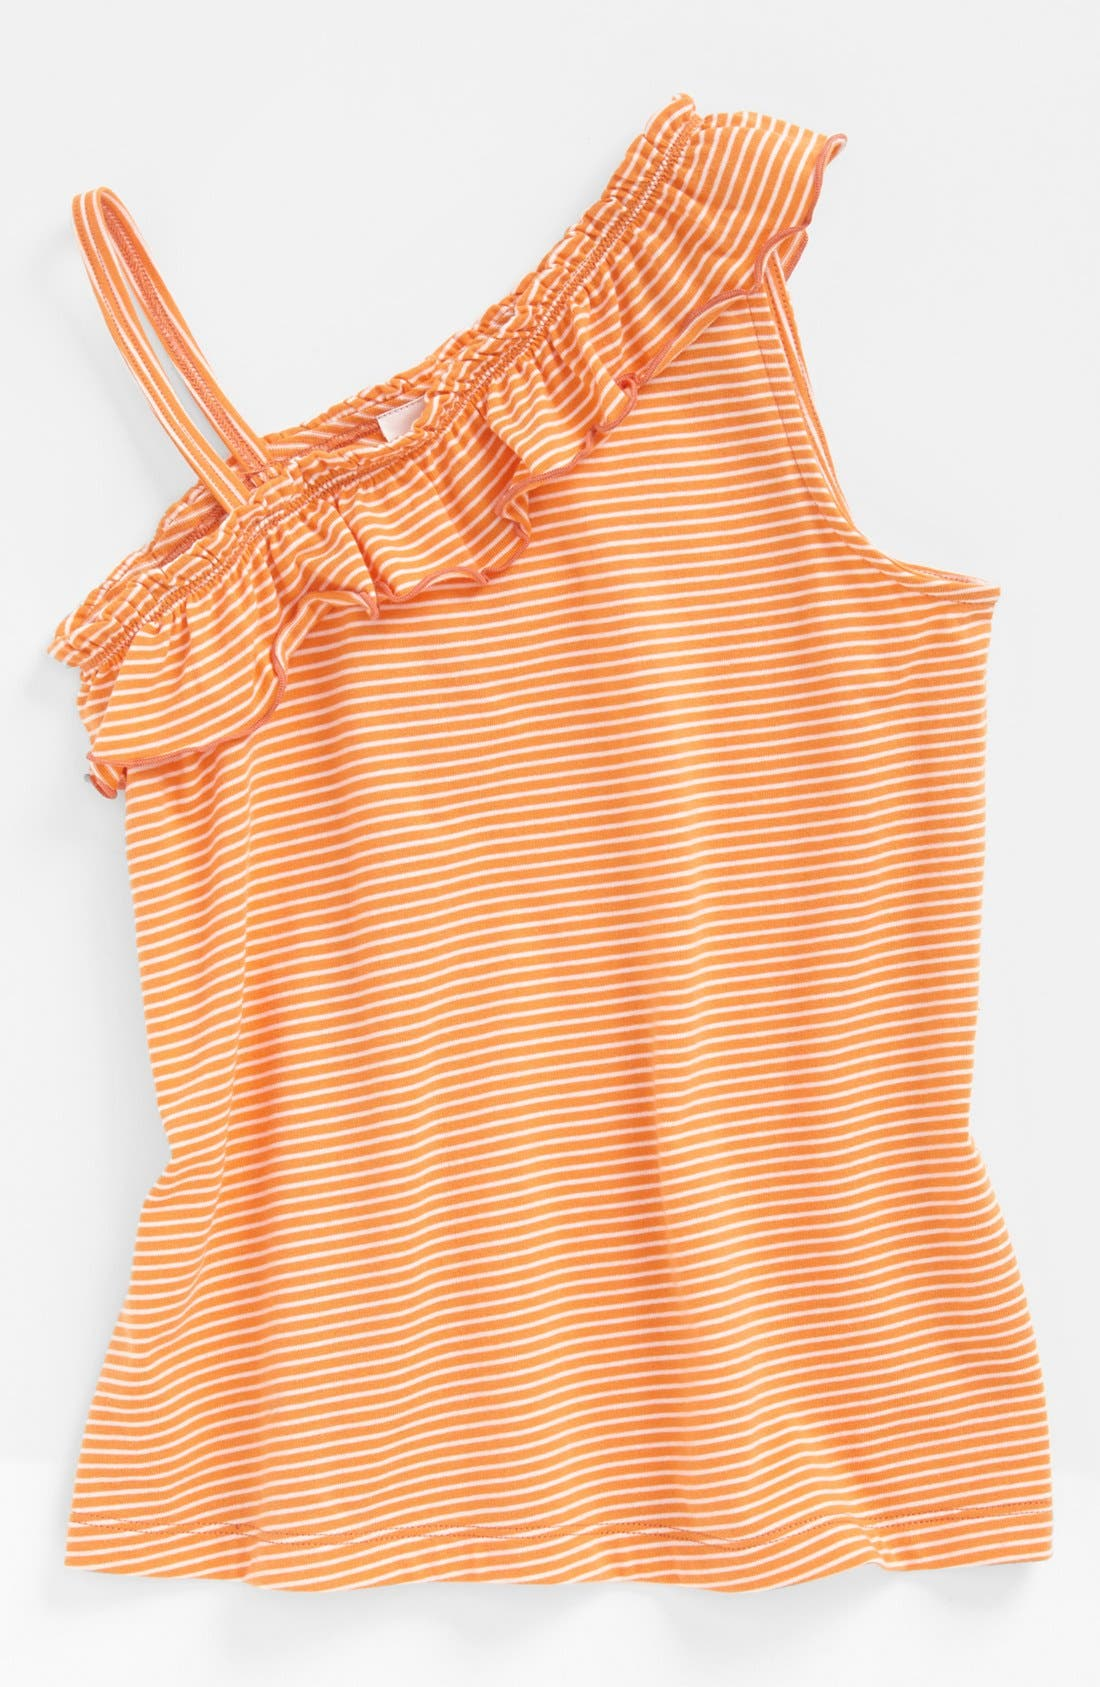 Alternate Image 1 Selected - Tucker + Tate 'Isabelle' Knit Top (Big Girls)